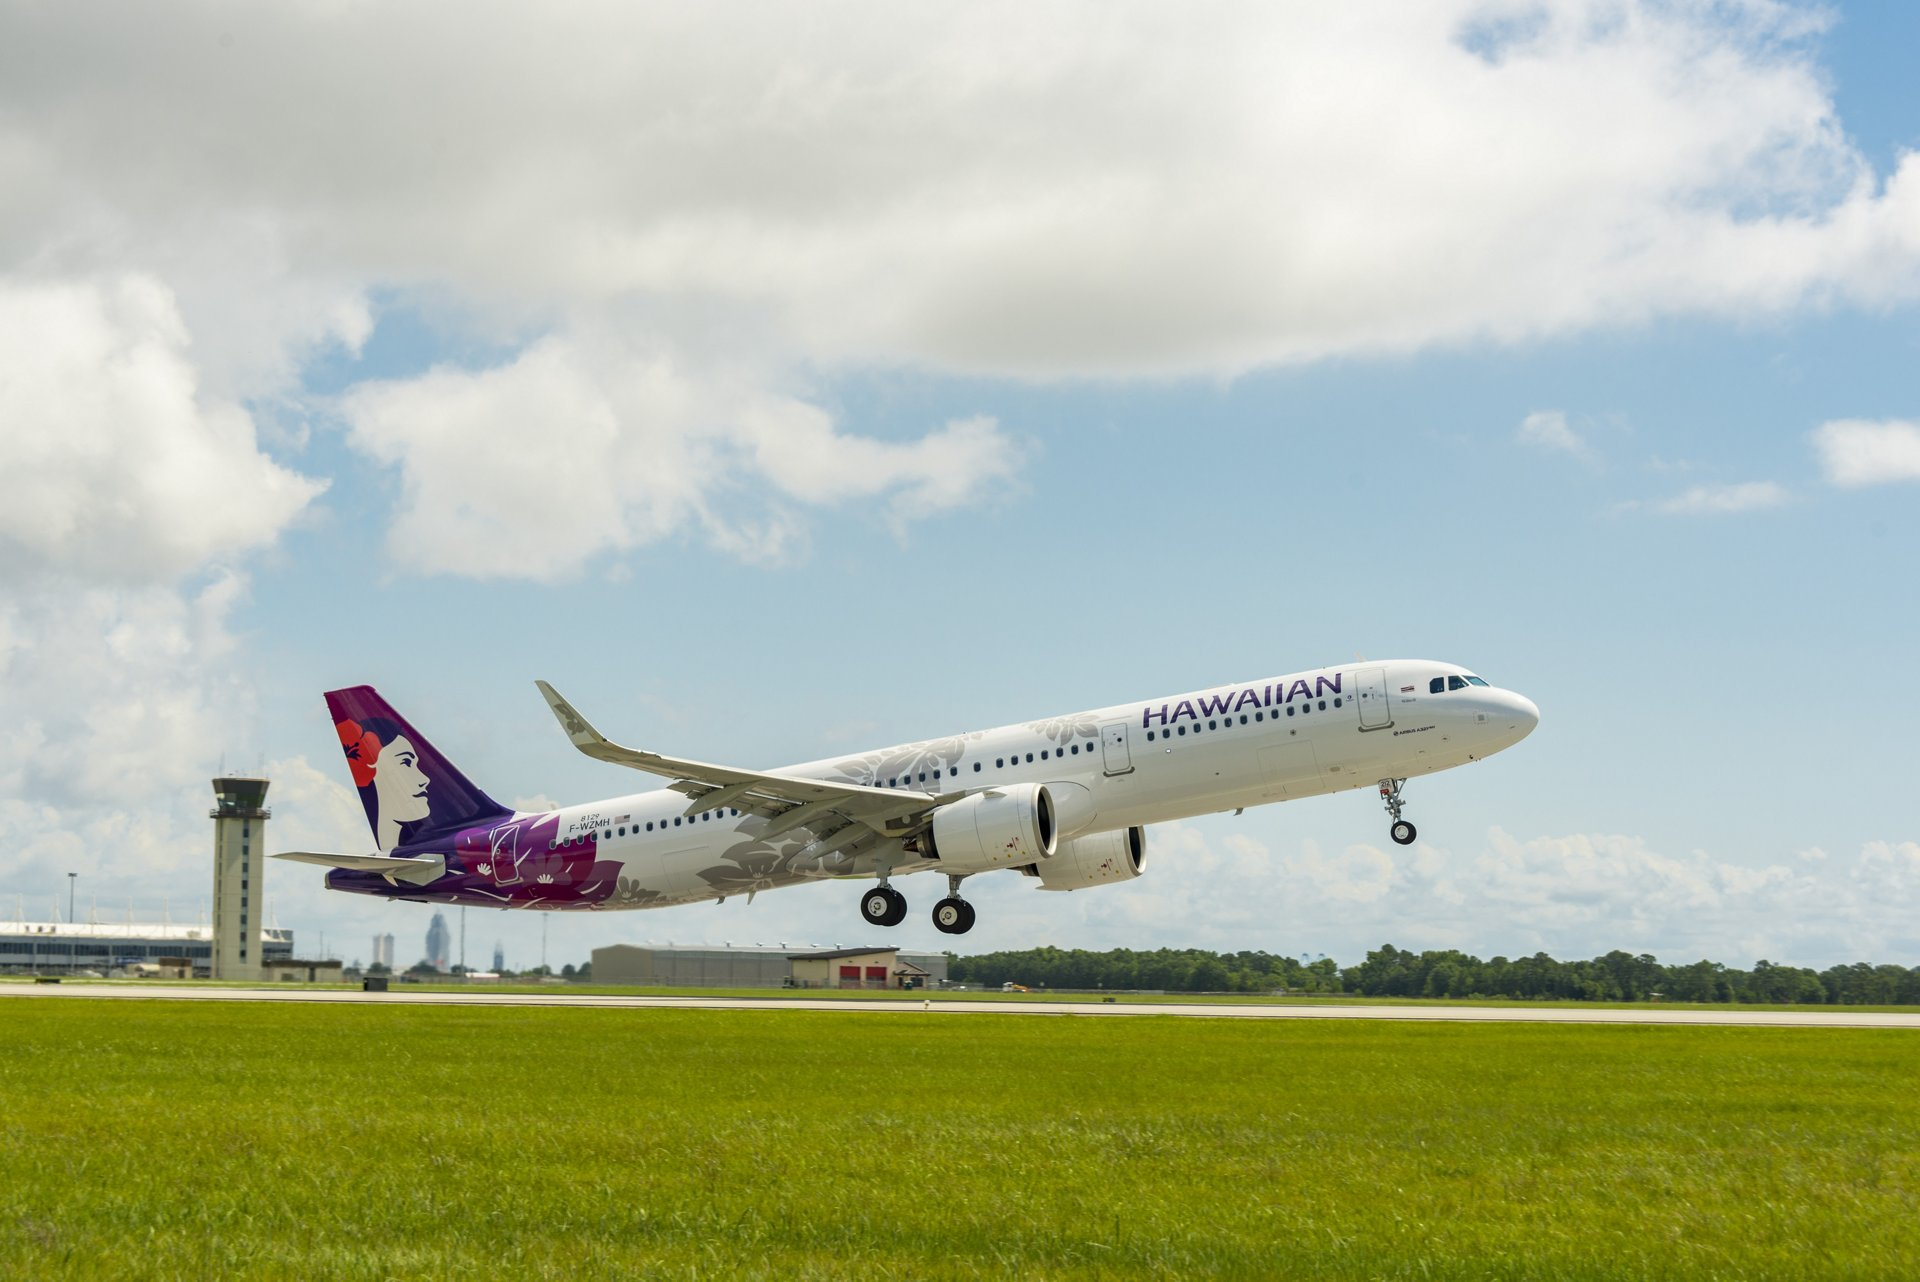 Hawaiian Airlines has taken delivery of its first U.S.-produced A321 – also the first aircraft in the NEO (new engine option) to be delivered from the Airbus U.S. Manufacturing Facility in Mobile, Alabama